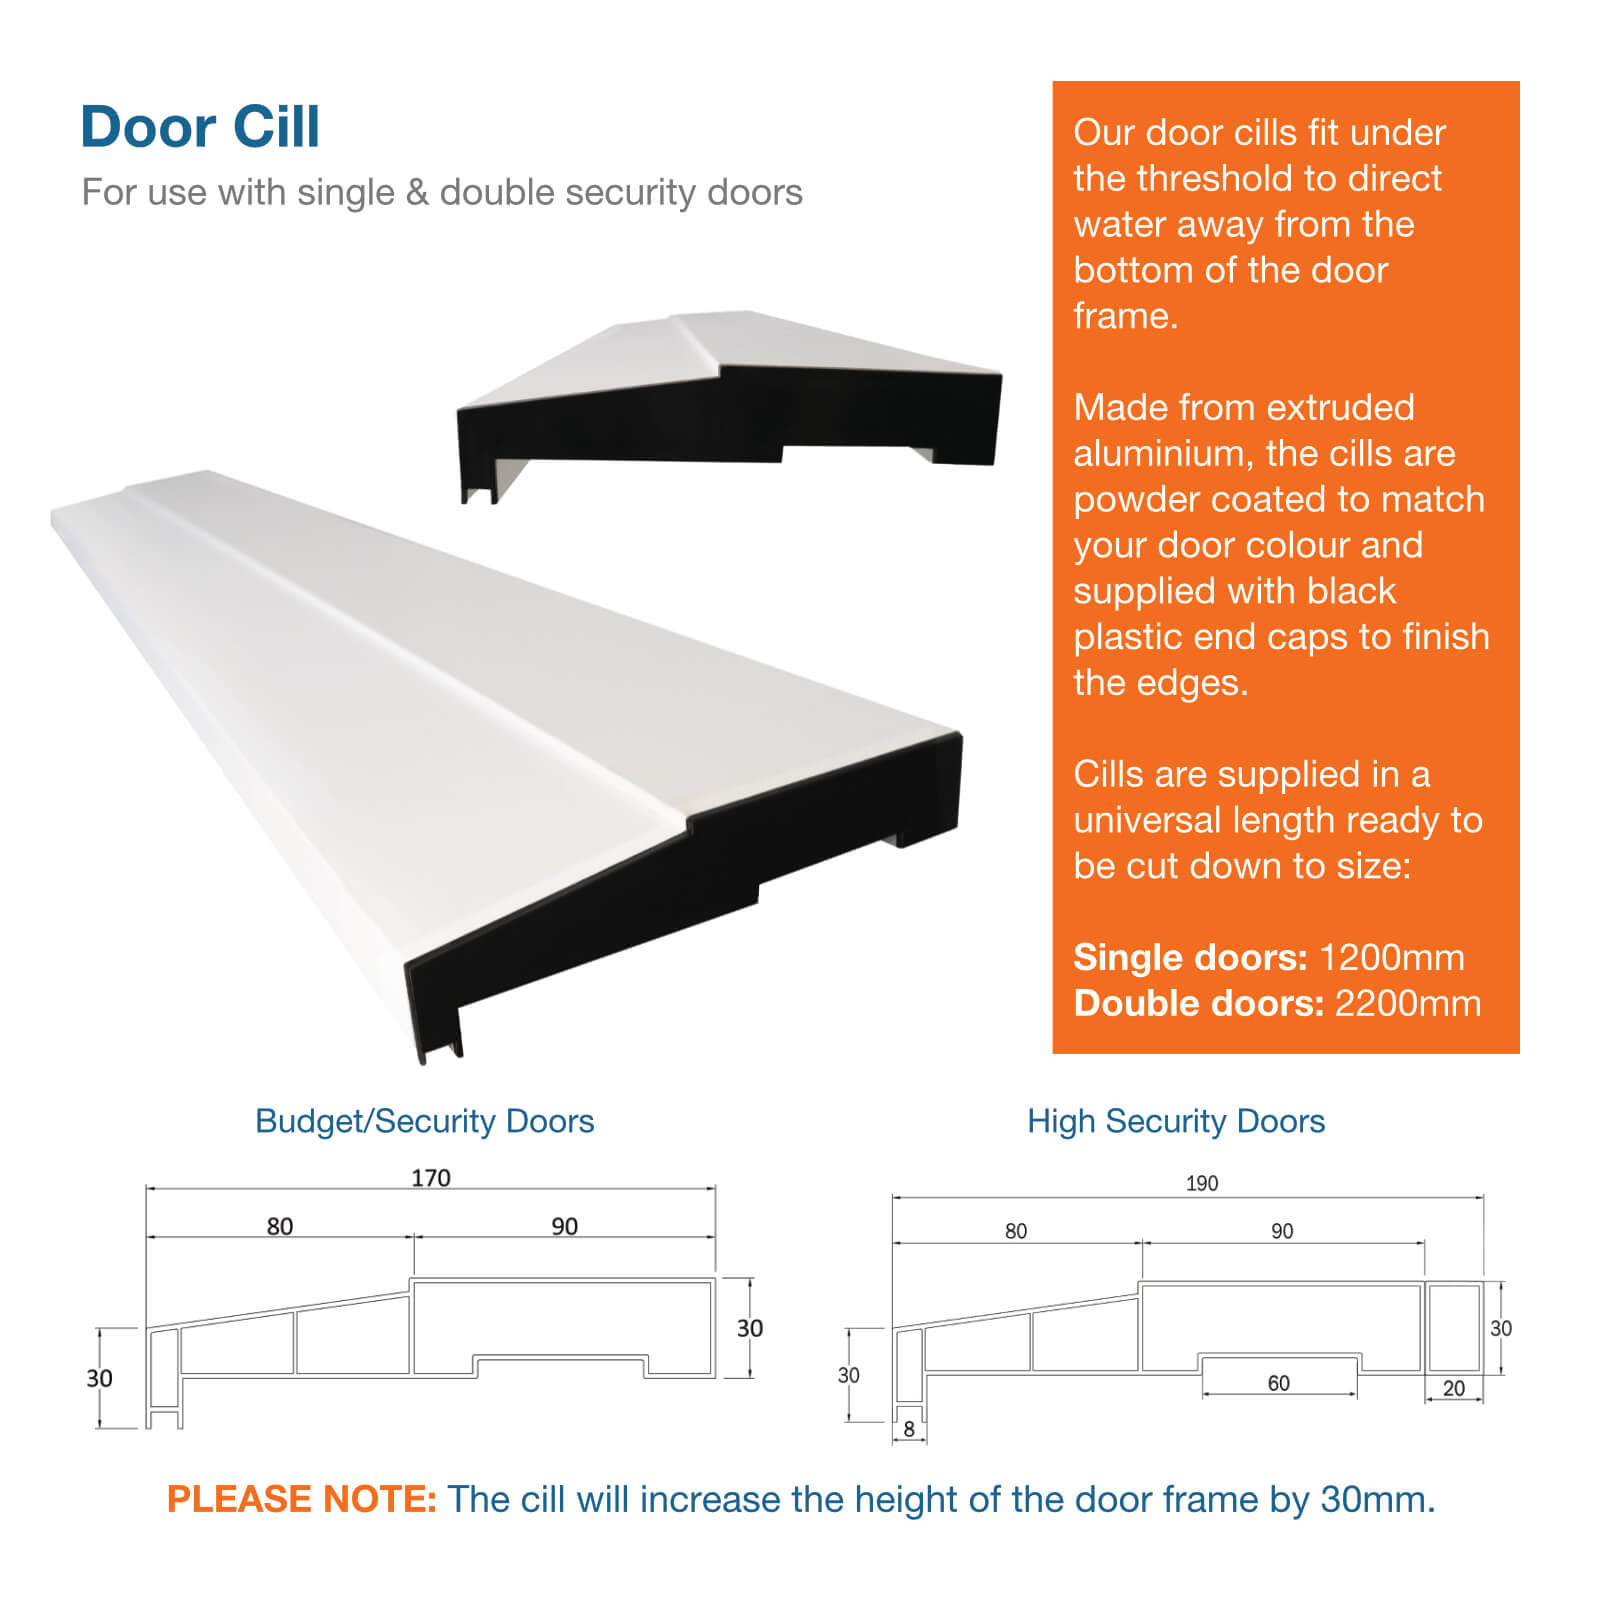 Image showing elevations and dimensions for door cill